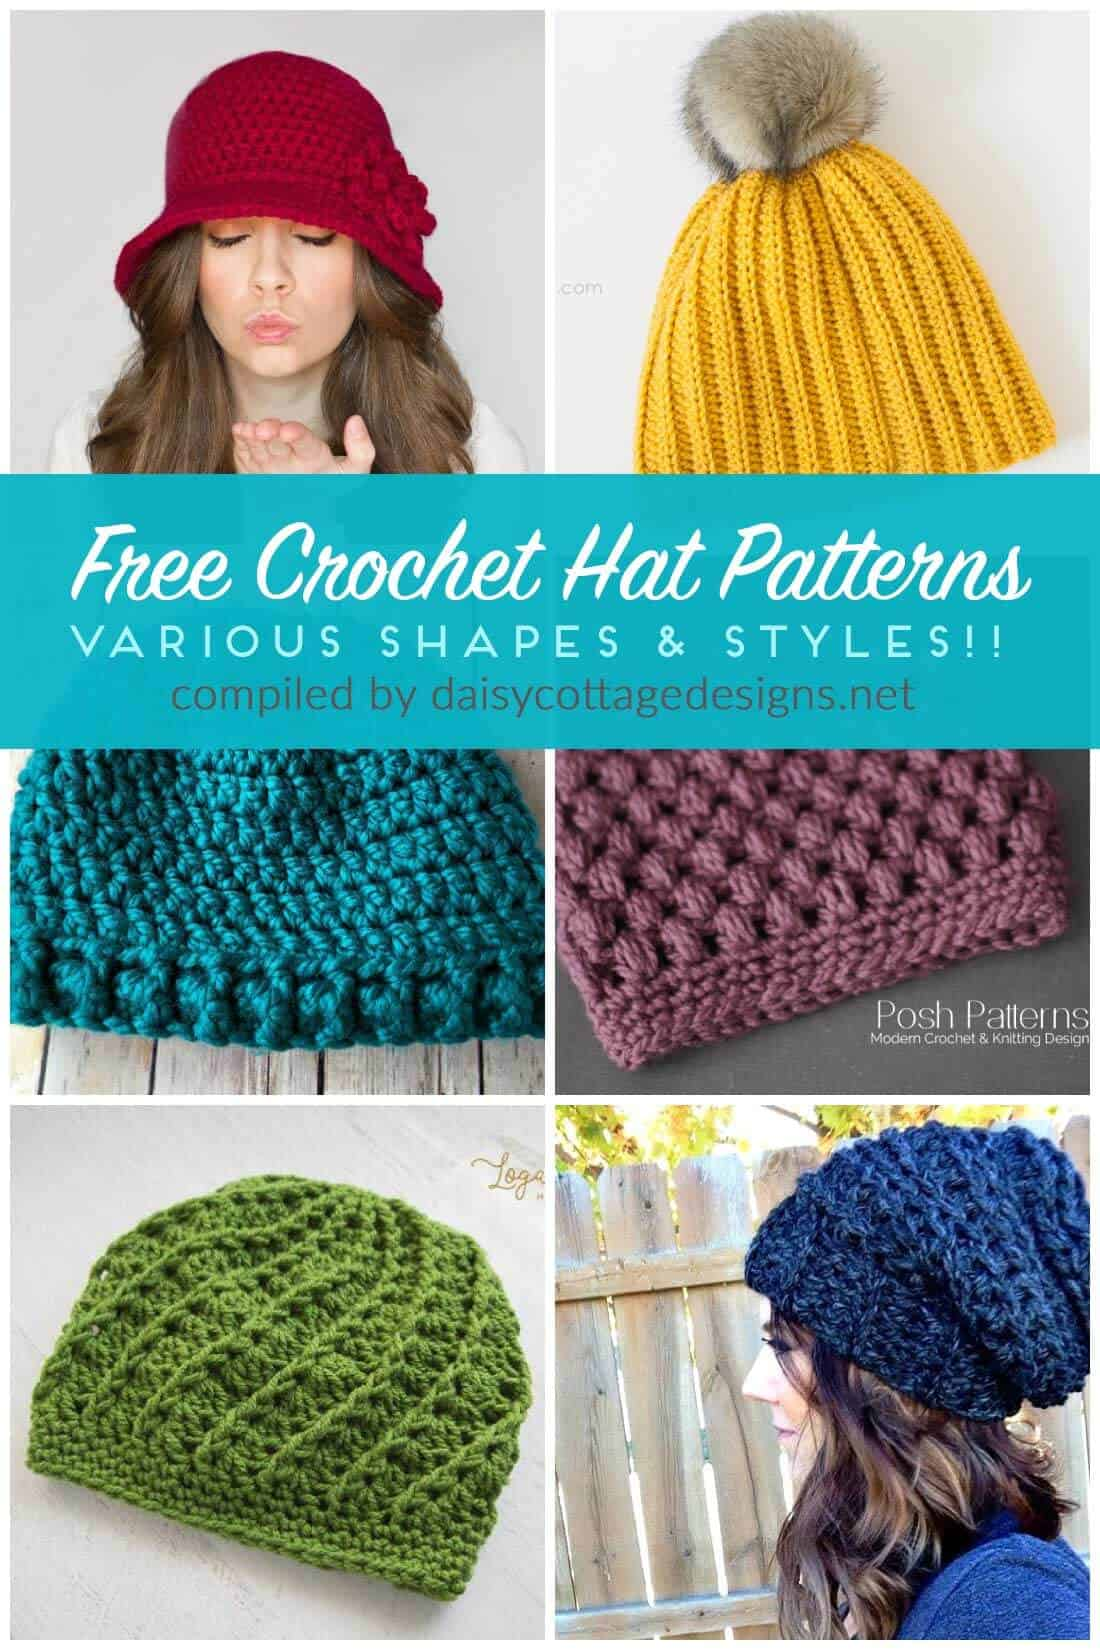 Free Crochet Hat Patterns - Daisy Cottage Designs 8eb653e2c